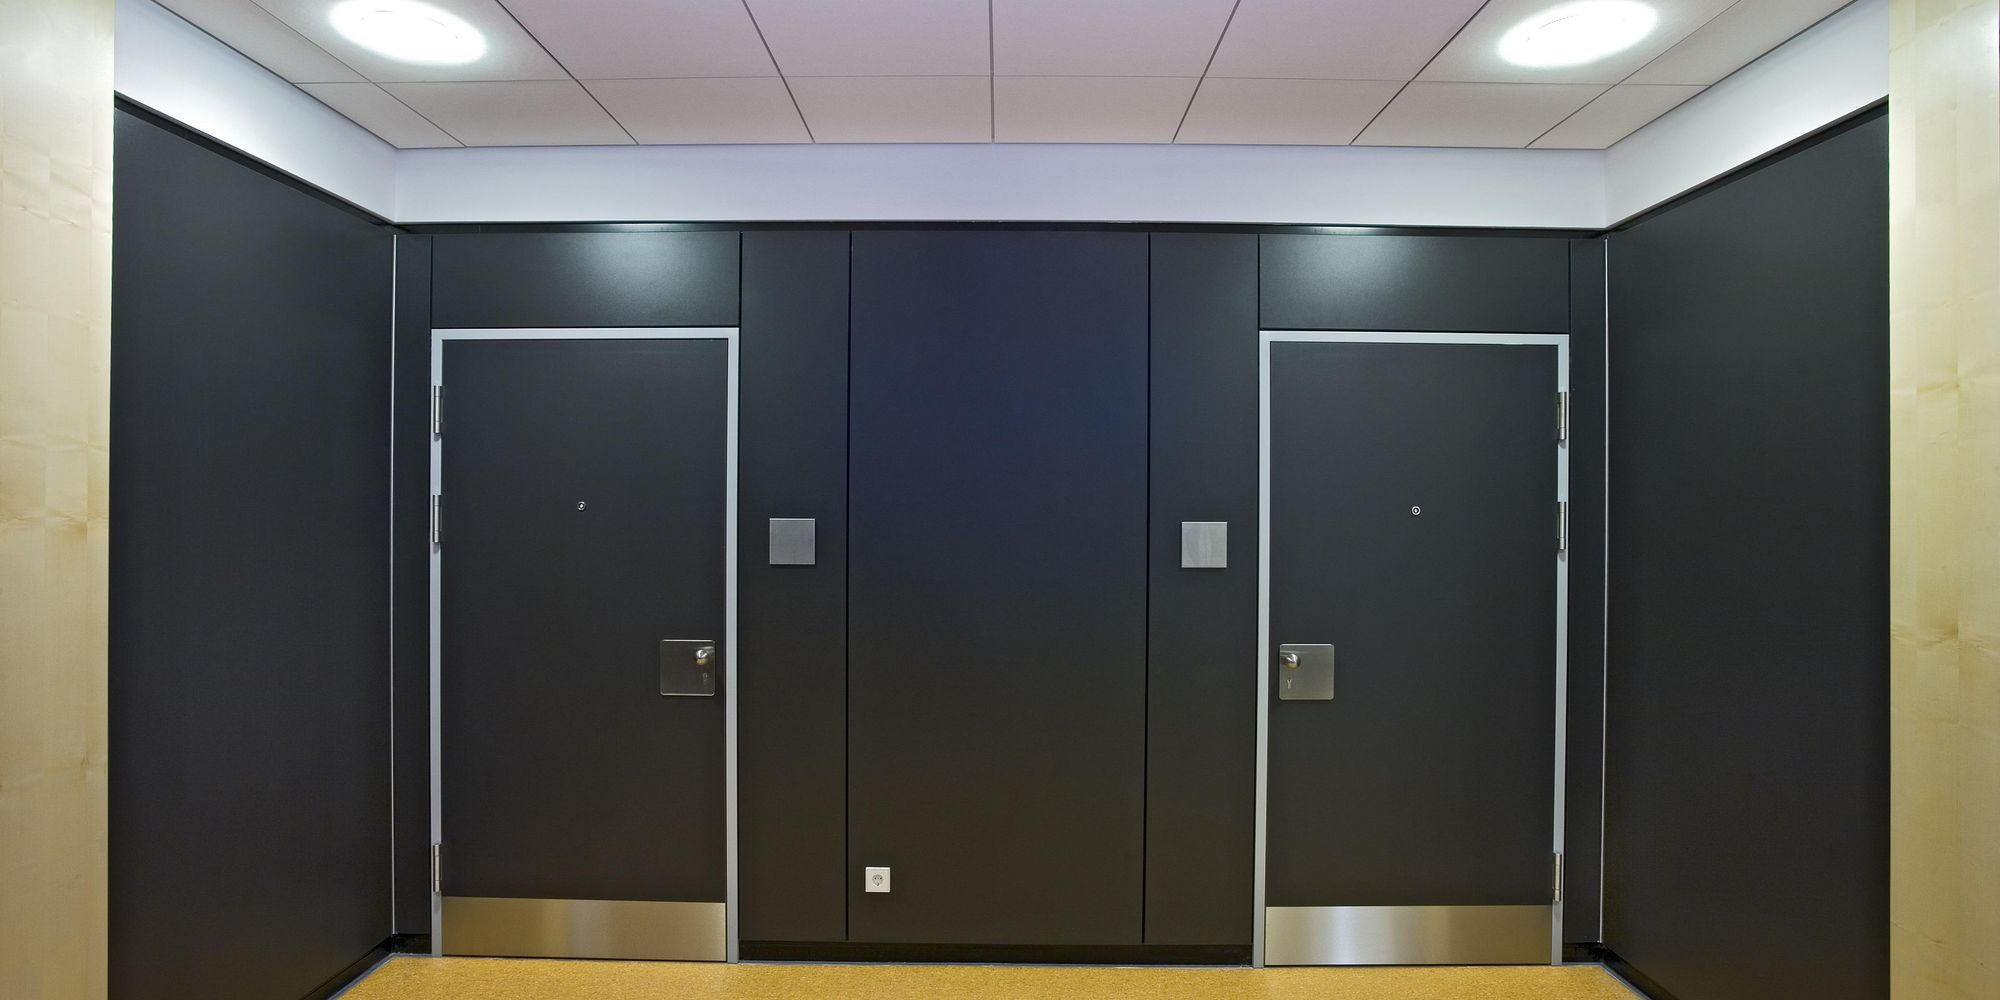 Flush-mounted swing door for schools and public buildings